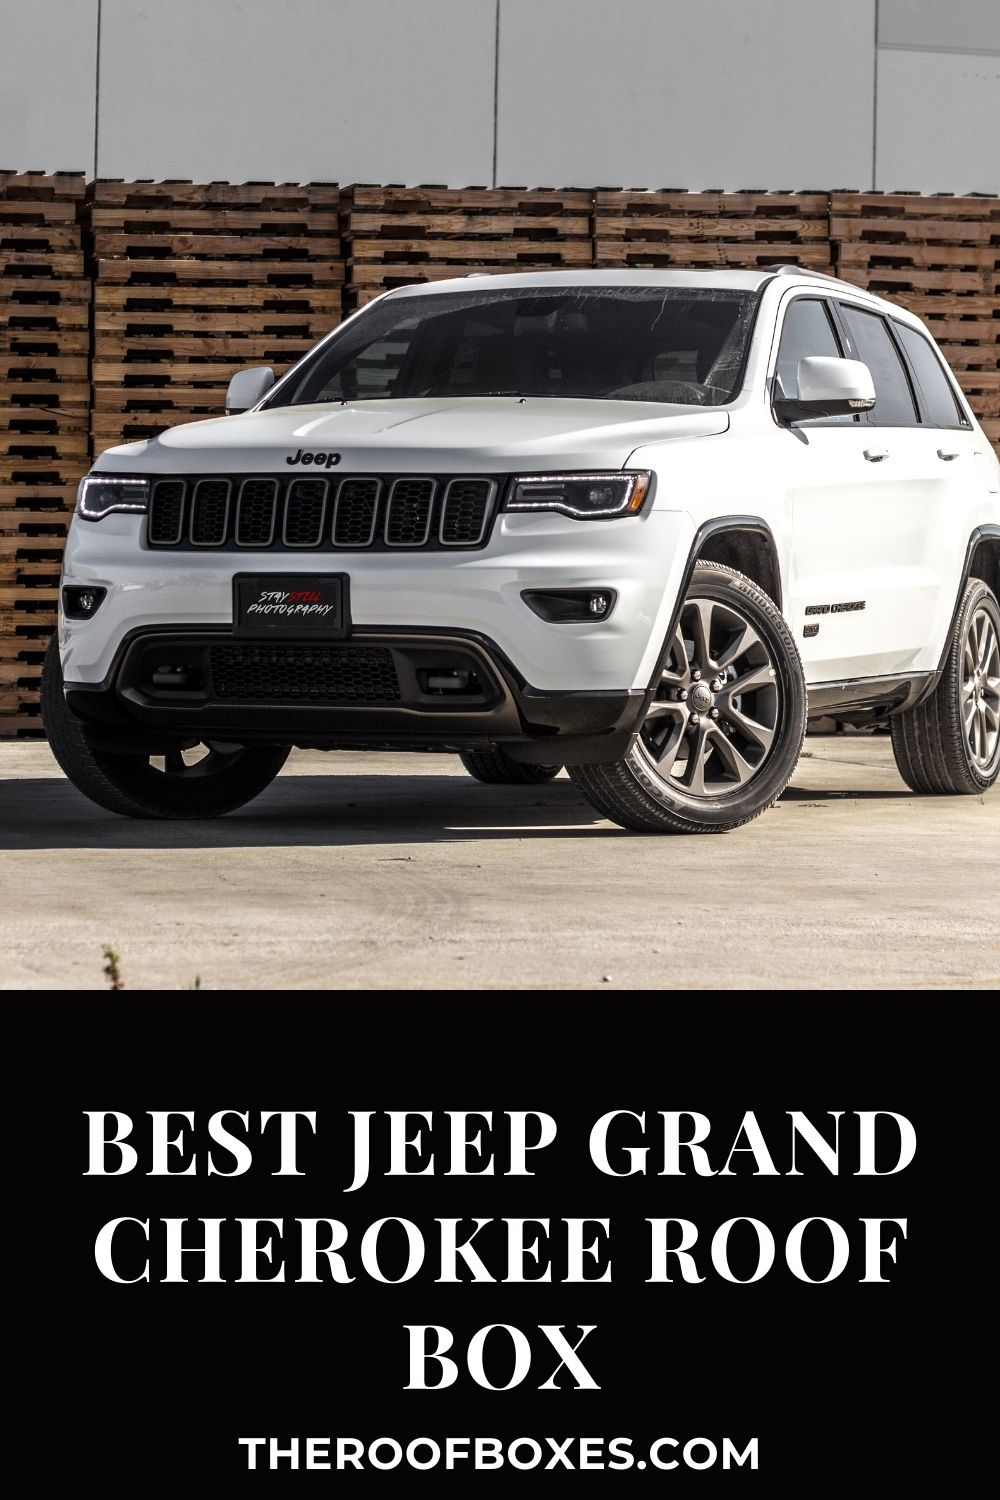 Buying Jeep Grand Cherokee Roof Boxes: A Buyer's Guide